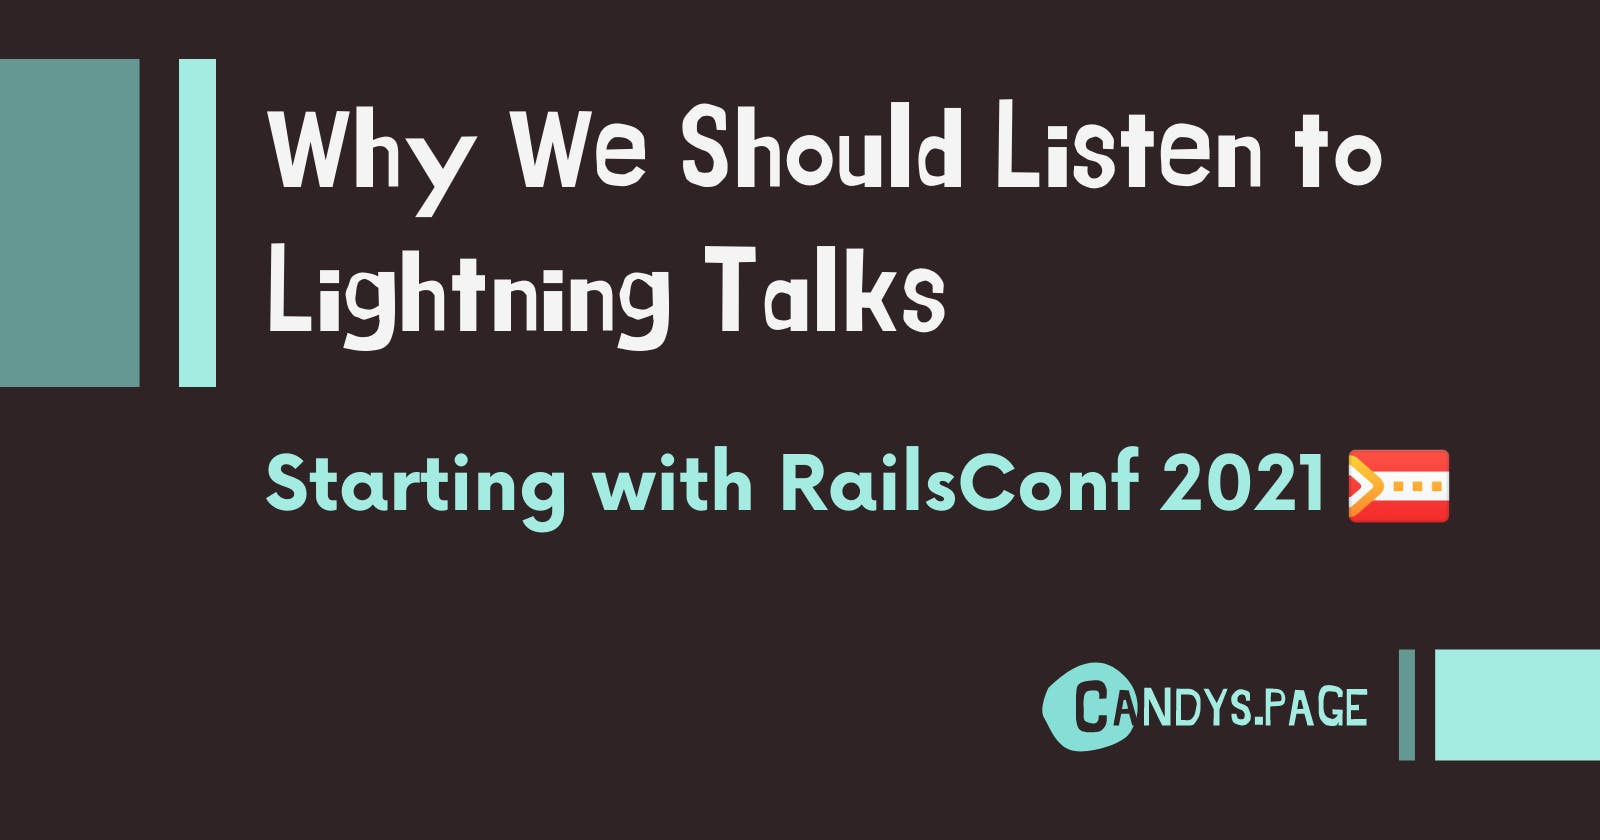 Why We Should Listen to Lightning Talks - Starting with RailsConf 2021